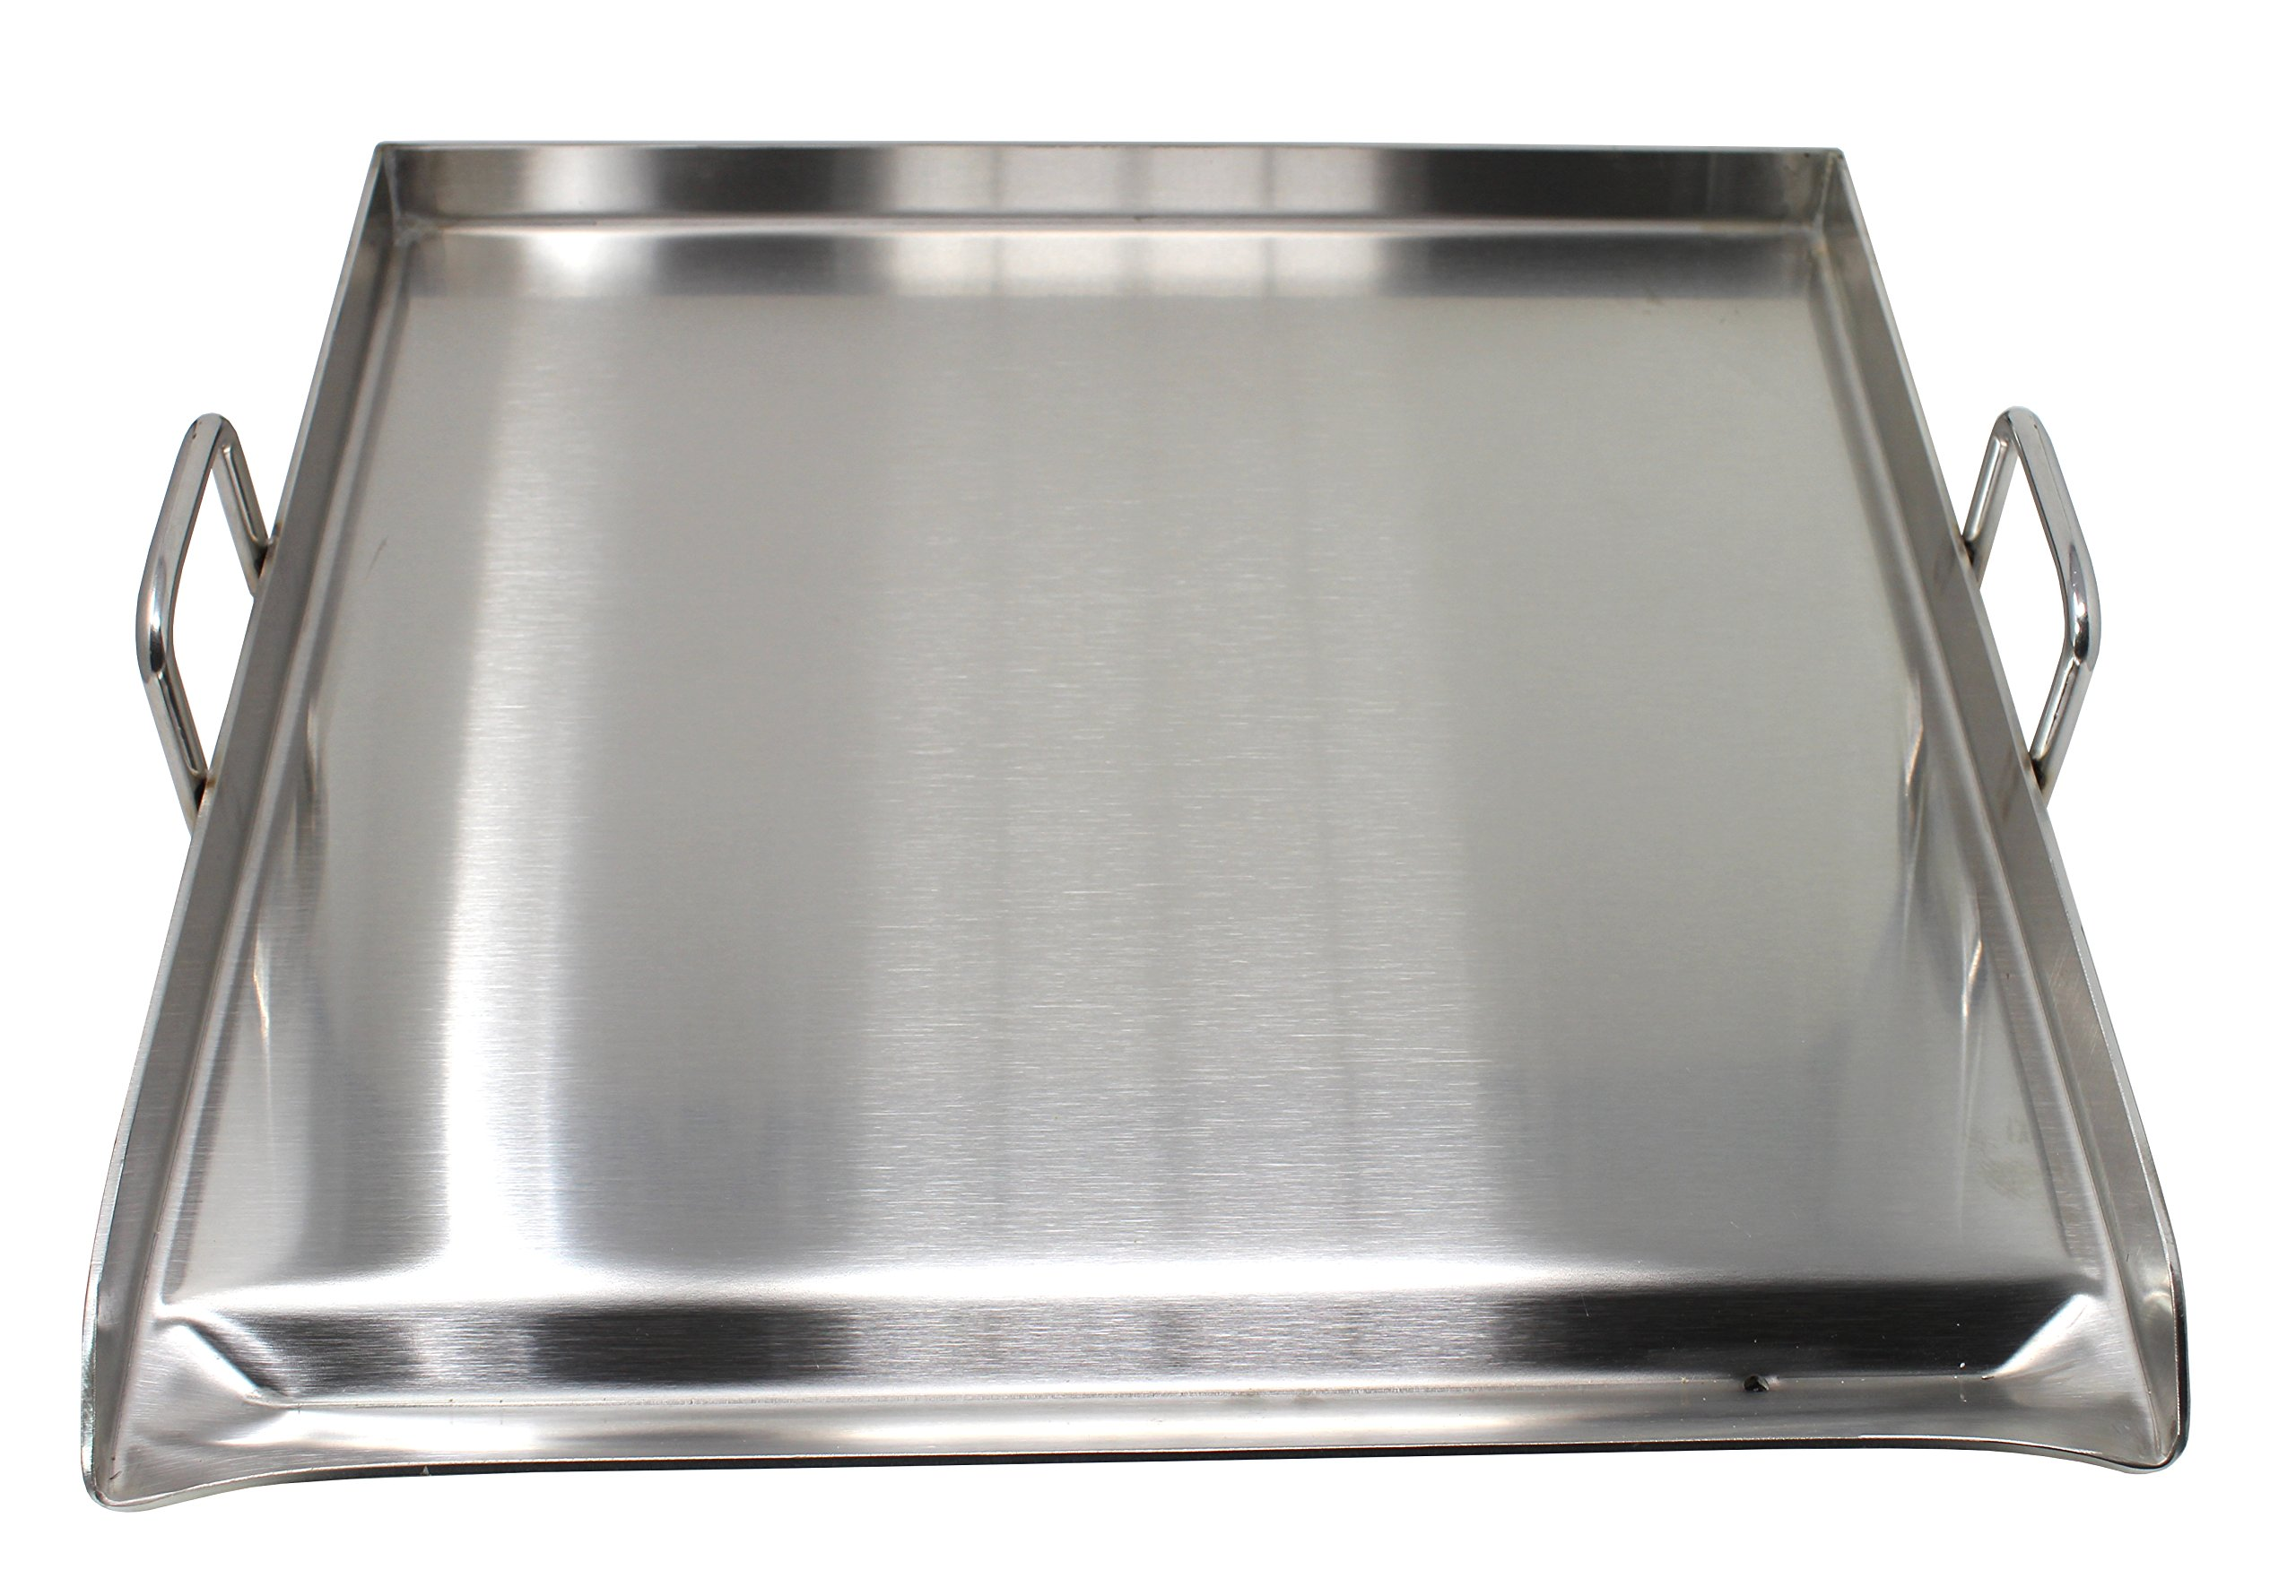 CONCORD Stainless Steel Square Universal Griddle for BBQ. Dimensions 20'' x 20''